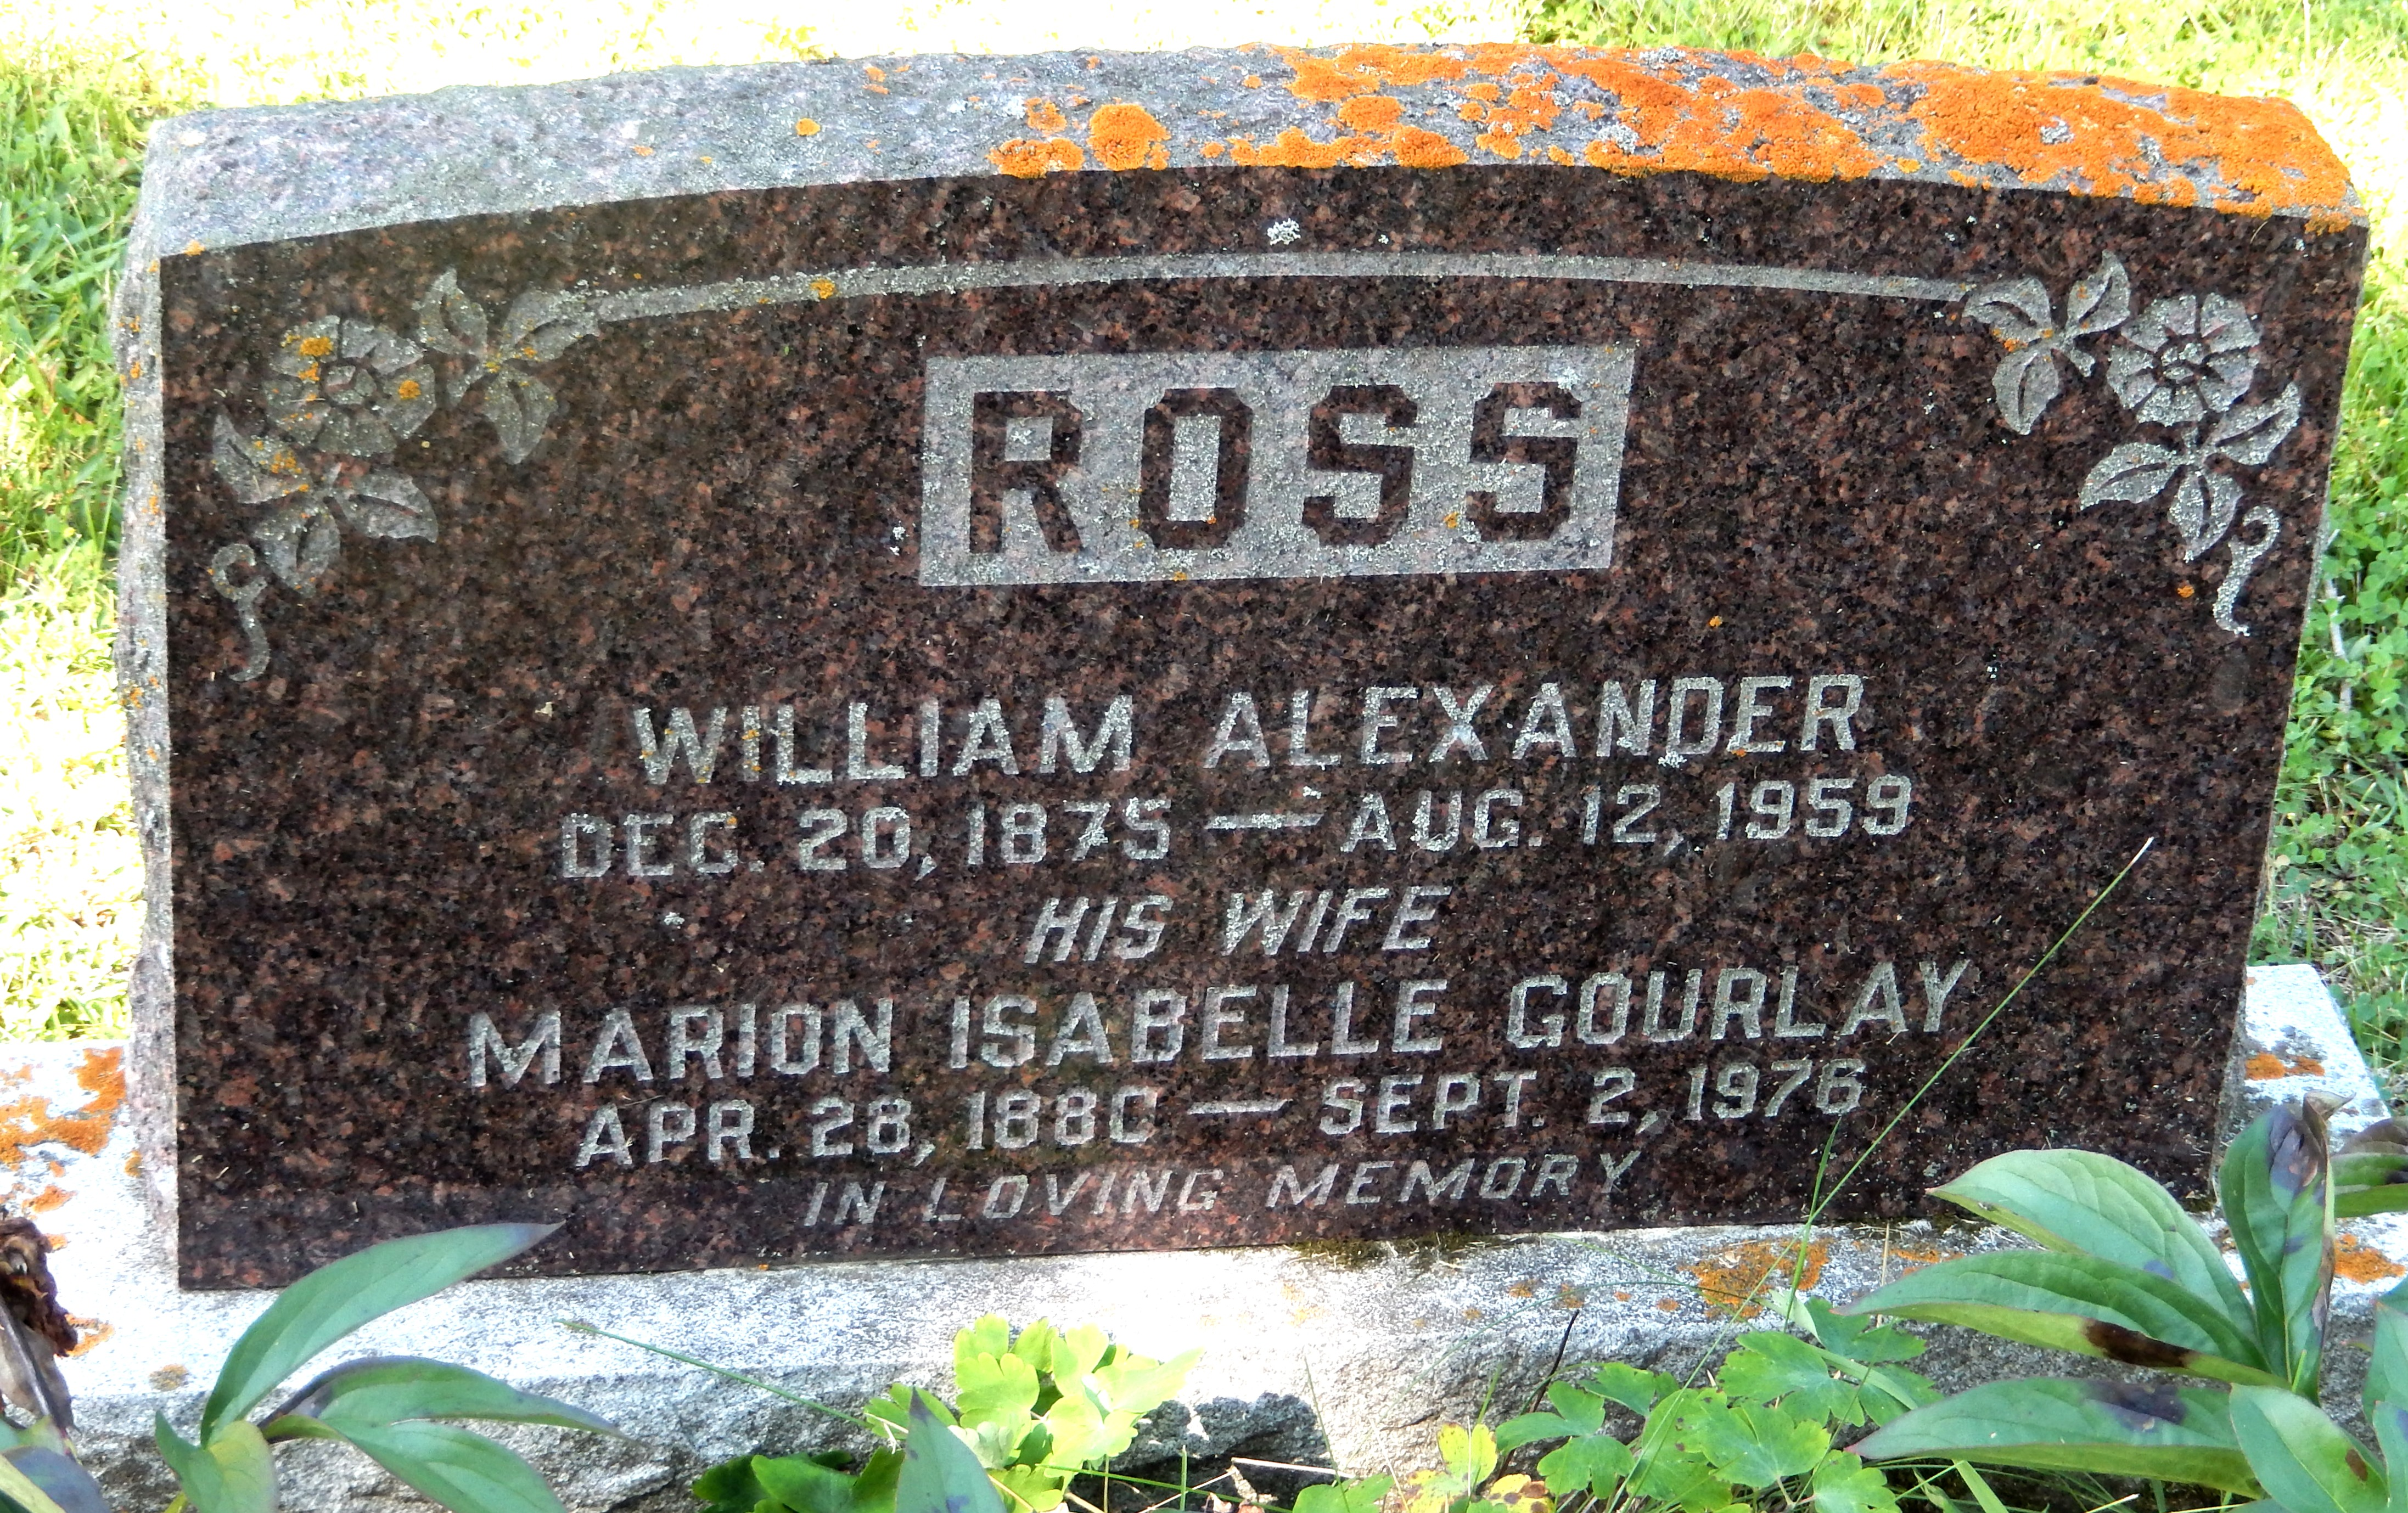 Marion Isabelle <i>Gourlay</i> Ross